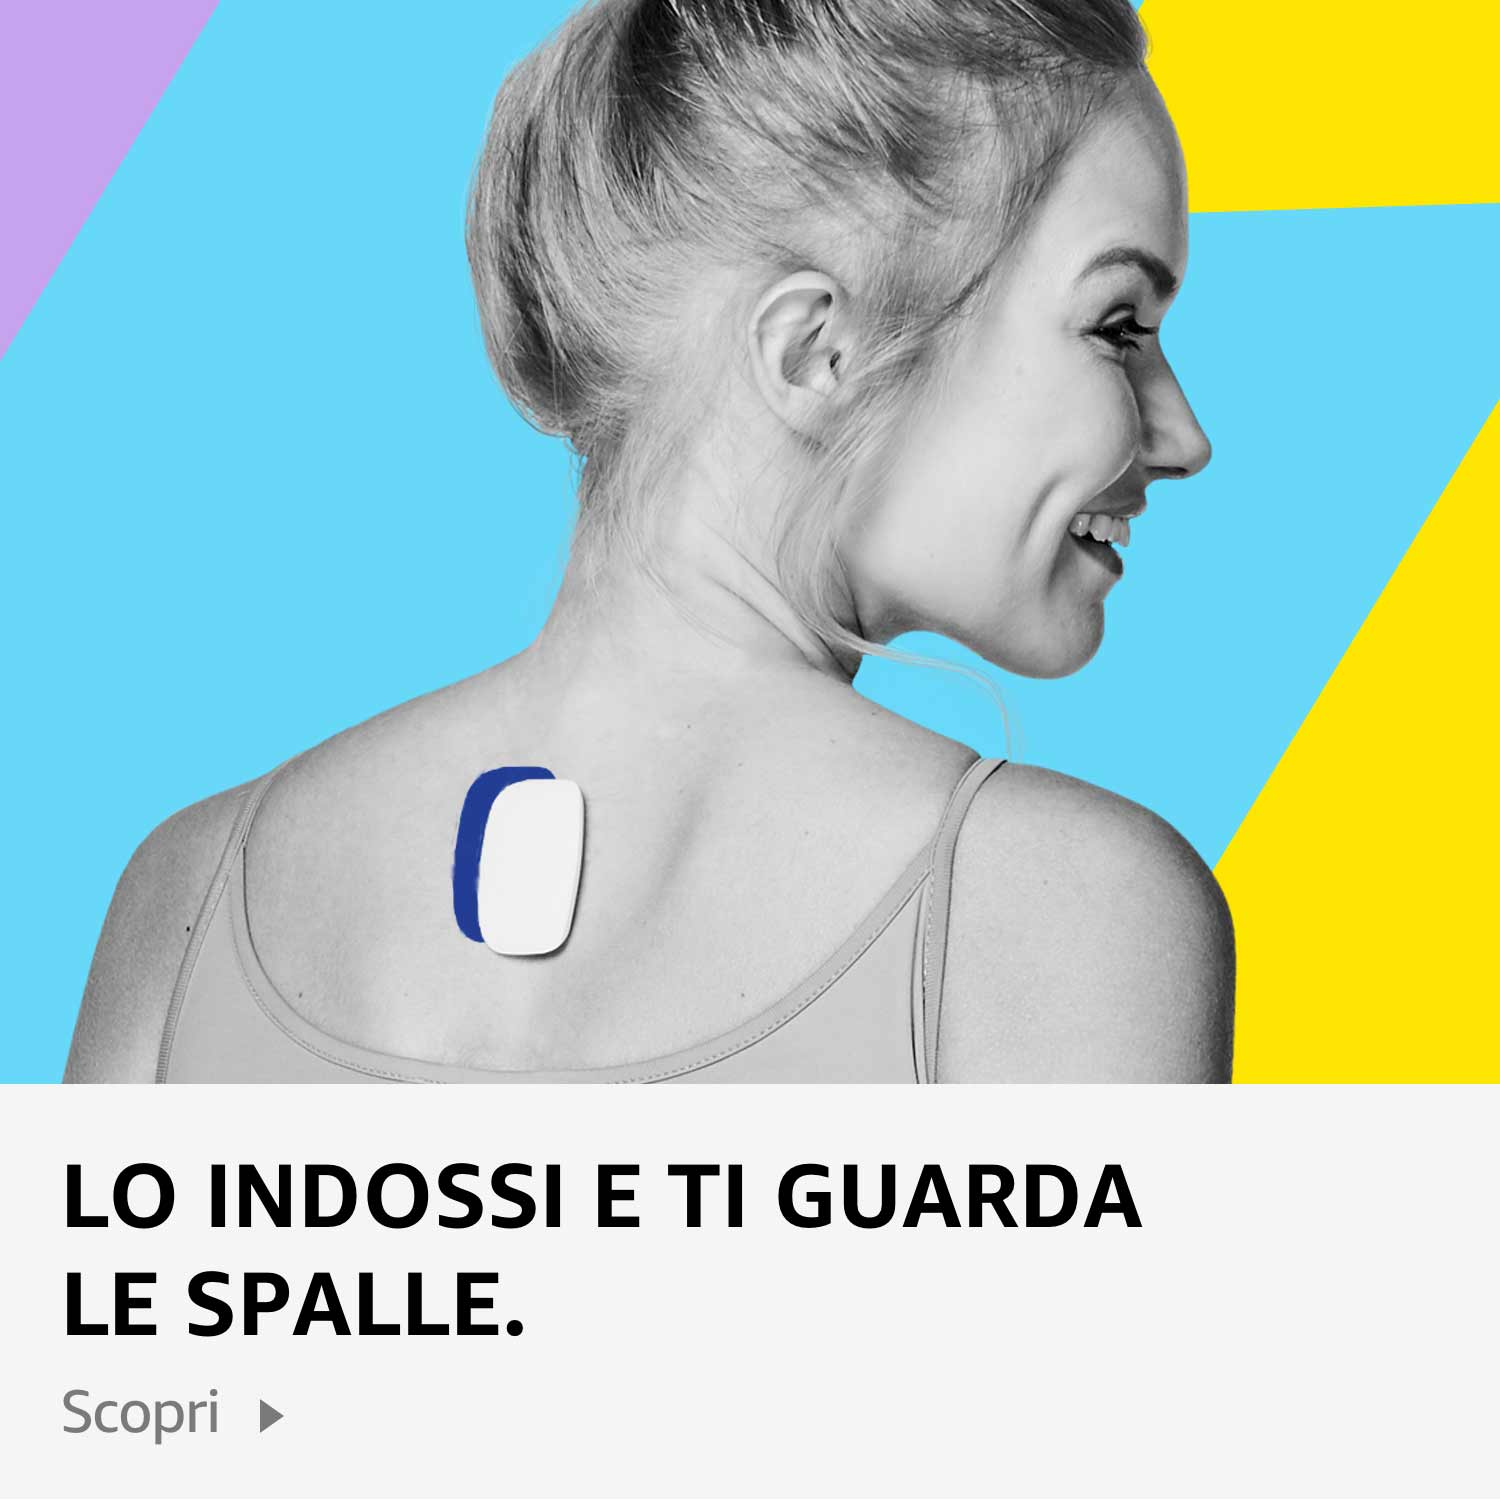 Amazon Launchpad: Lo indossi e ti guarda le spalle